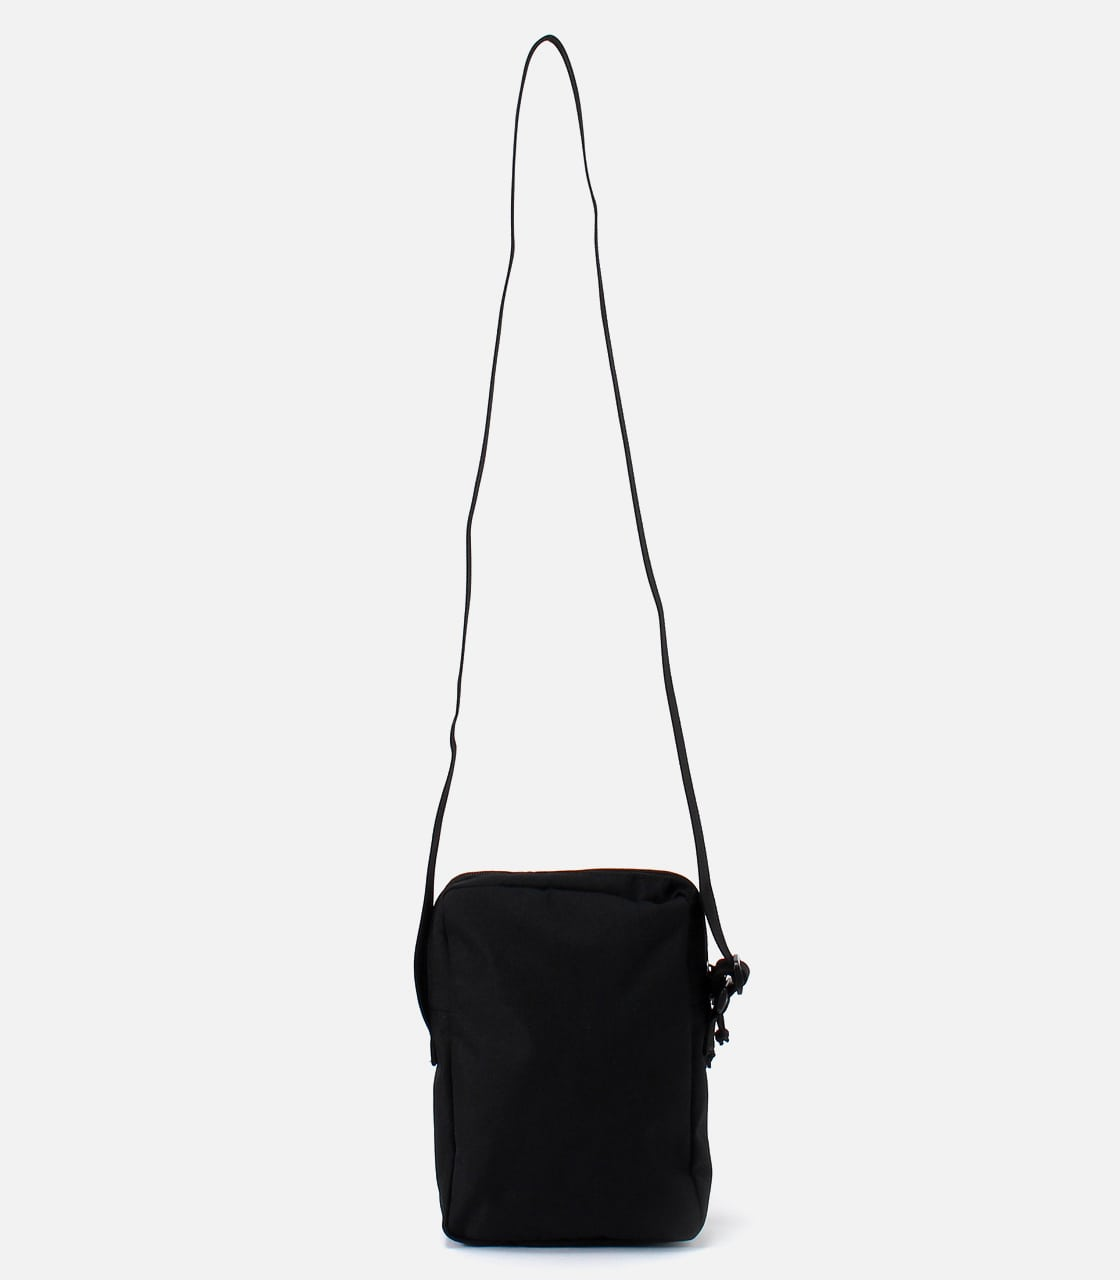 【AZUL BY MOUSSY】CONTEMPORARY SHOULDER BAG 詳細画像 BLK 2